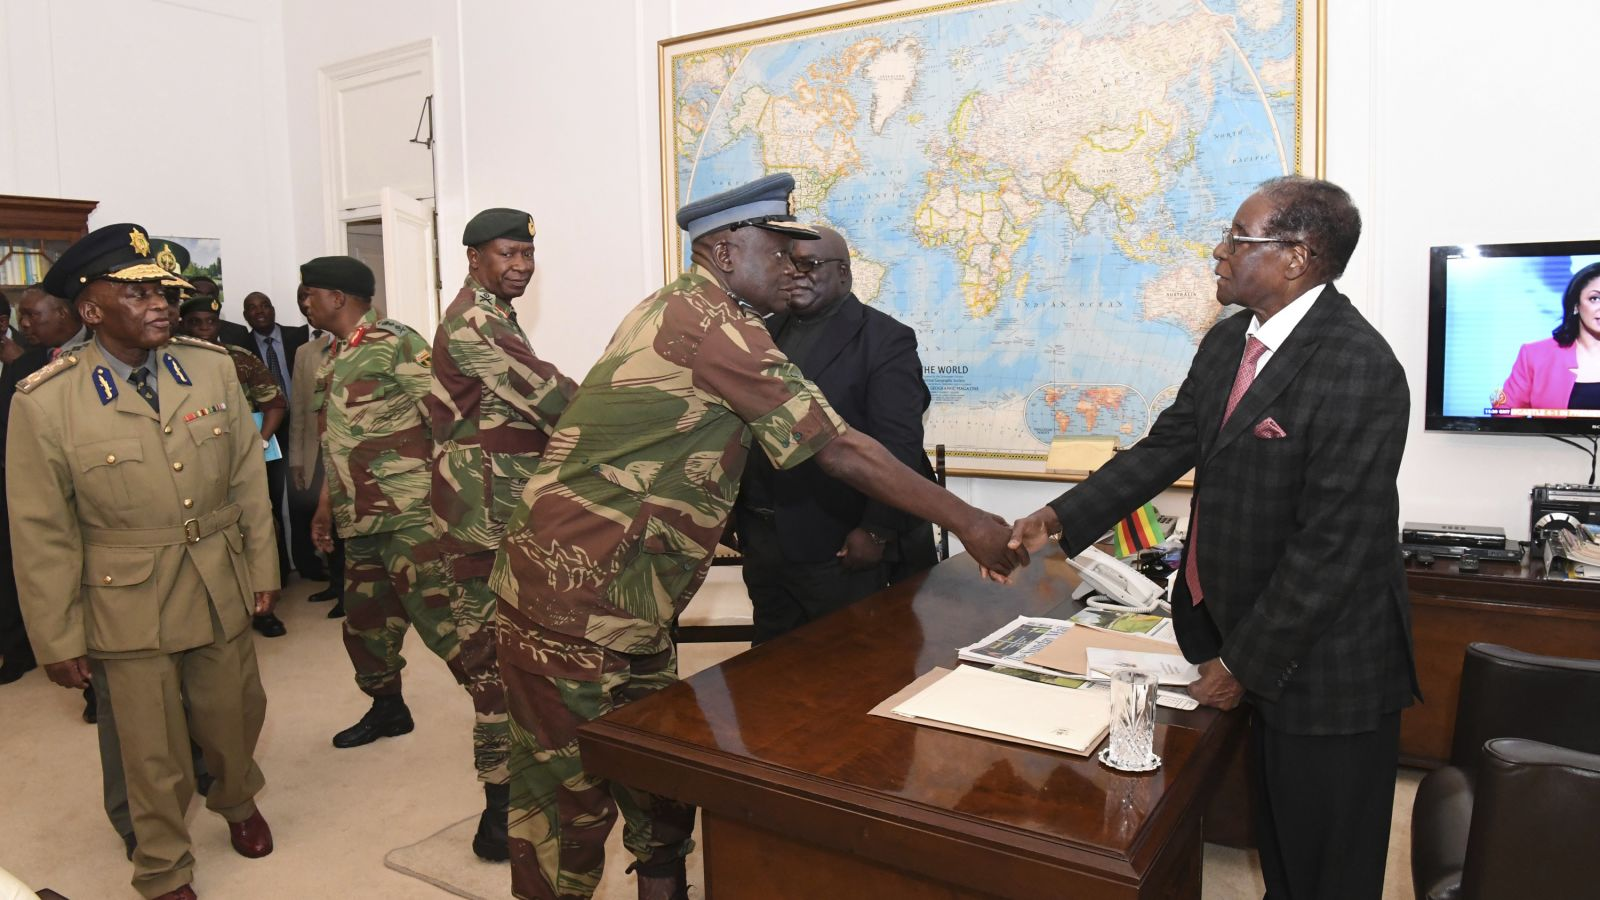 Mugabe meets with generals in Harare on November 19, 2017. Military leaders had been in talks with Mugabe over his exit.